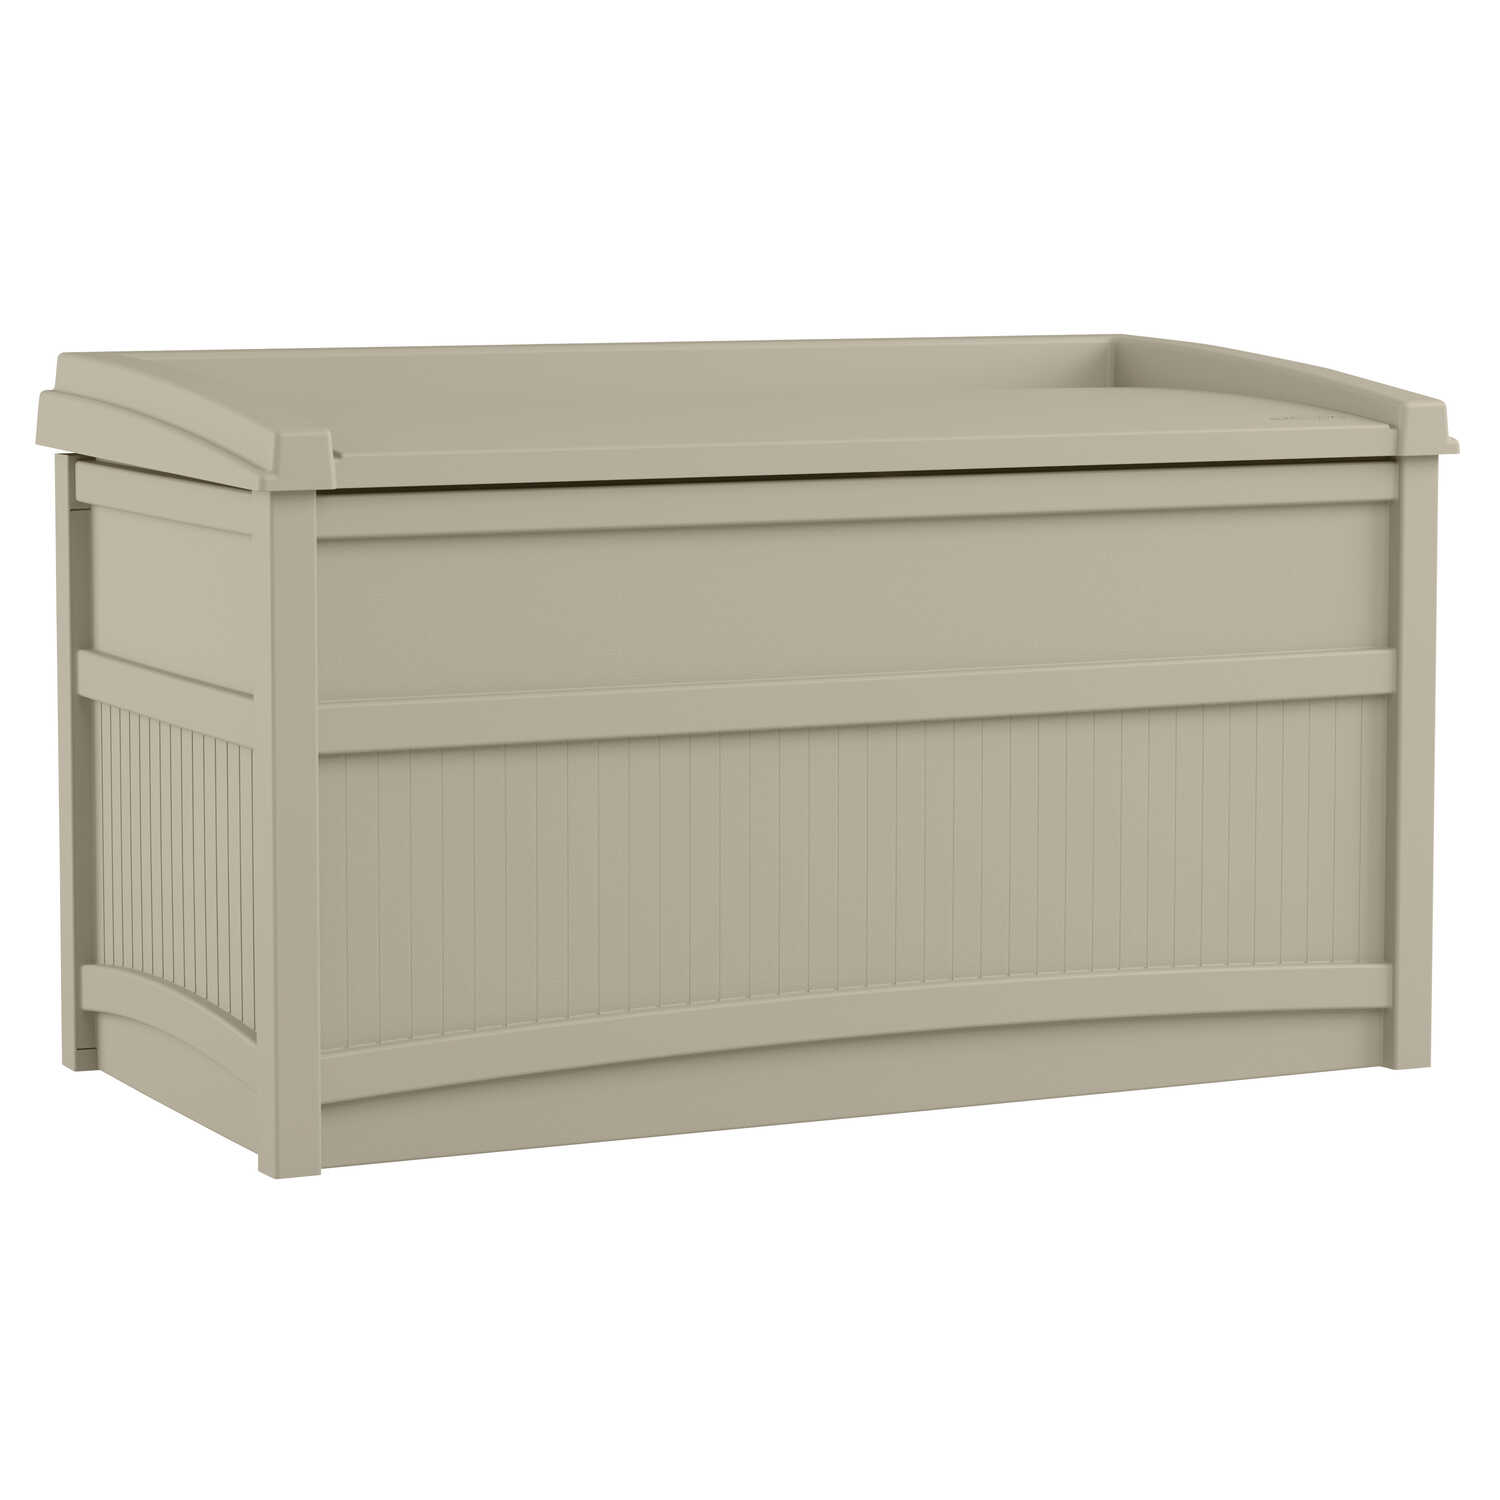 Suncast  Resin  23-1/4 in. H x 41 in. W x 21 in. D Light Taupe  Deck Box with Seat